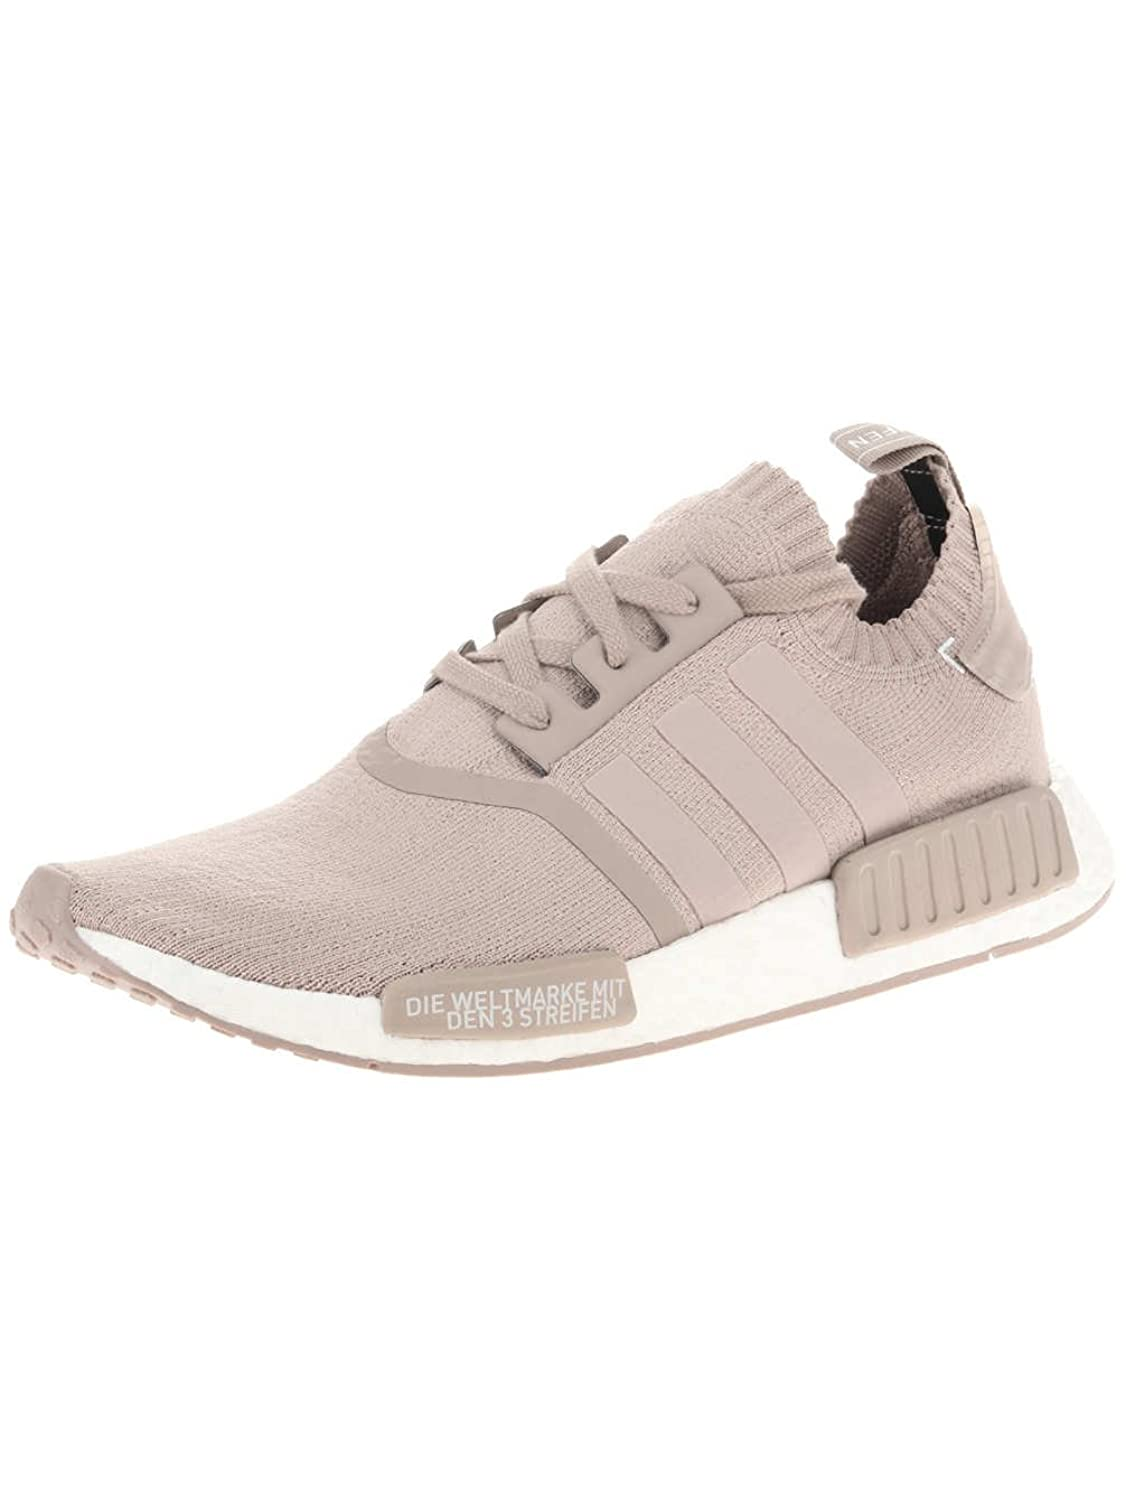 reputable site d3433 527c1 Amazon.com | Mens Adidas NMD R1 PK French Beige Vapor Grey ...